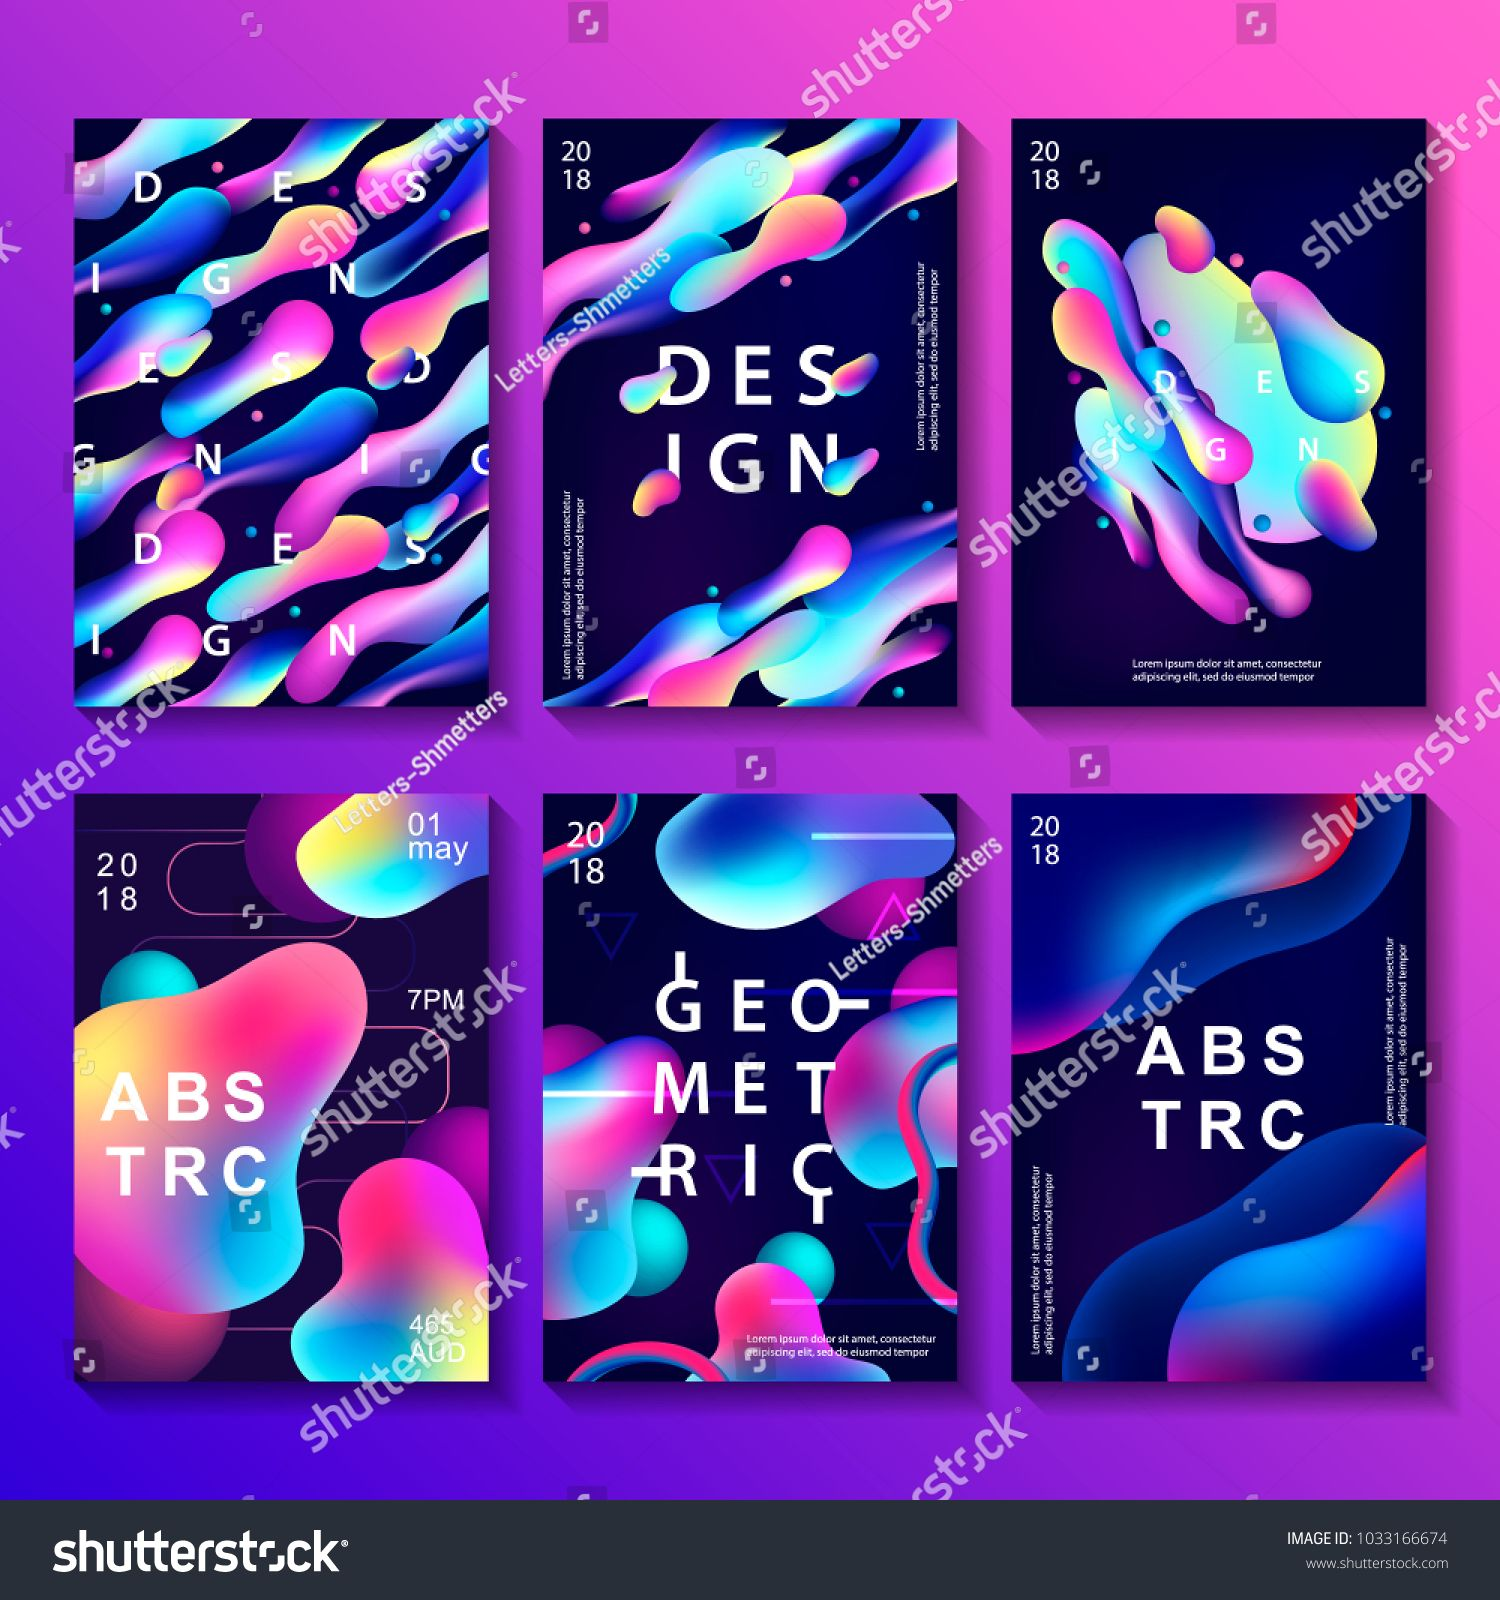 Set Of Creative Design Posters With Plastic Shapes Modern Style Abstraction Background Abstract Backgr Creative Poster Design Poster Design Futuristic Design